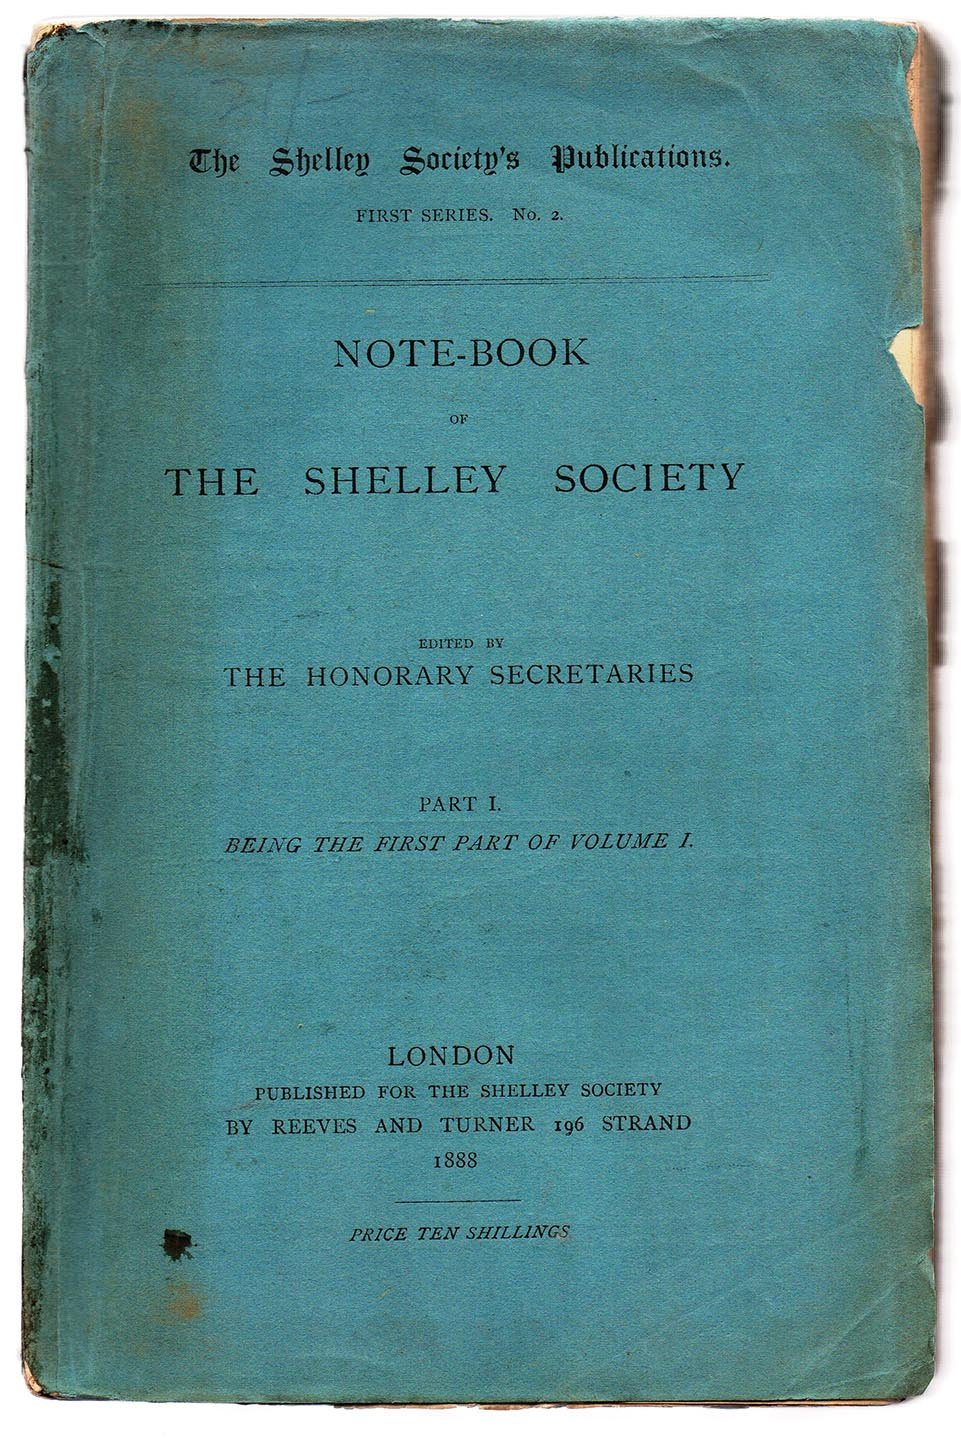 Note-Book of The Shelley Society Part I. Being the First Part of Volume I